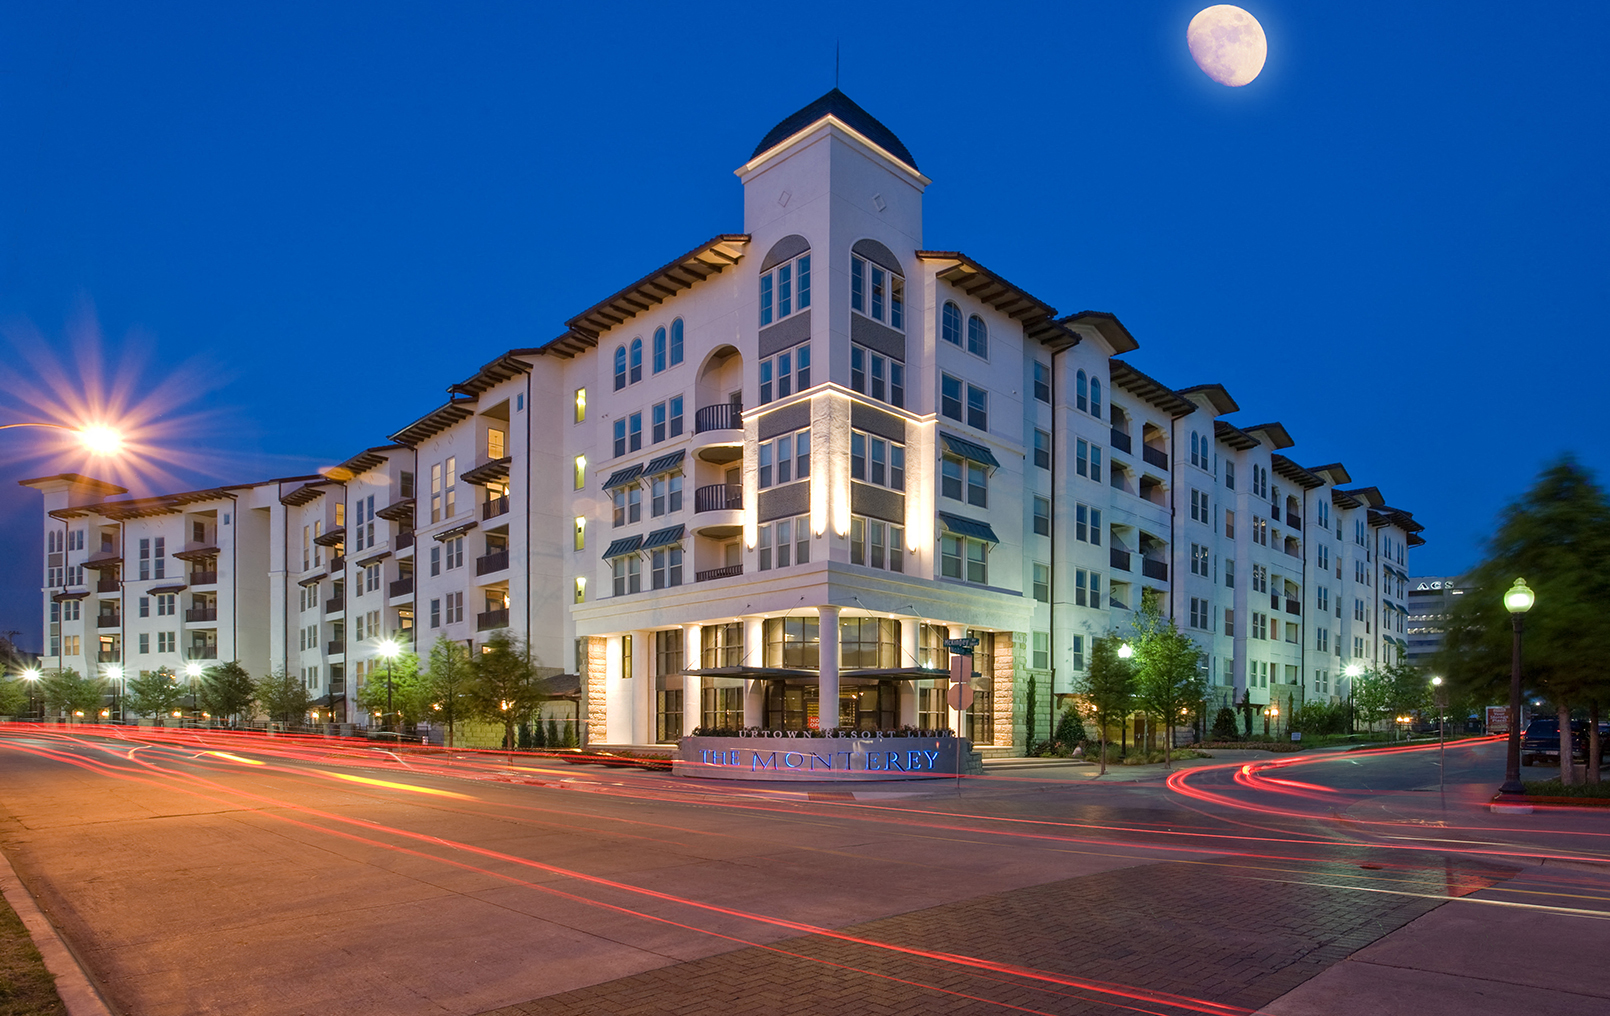 The Monterey By Windsor Apartments Building